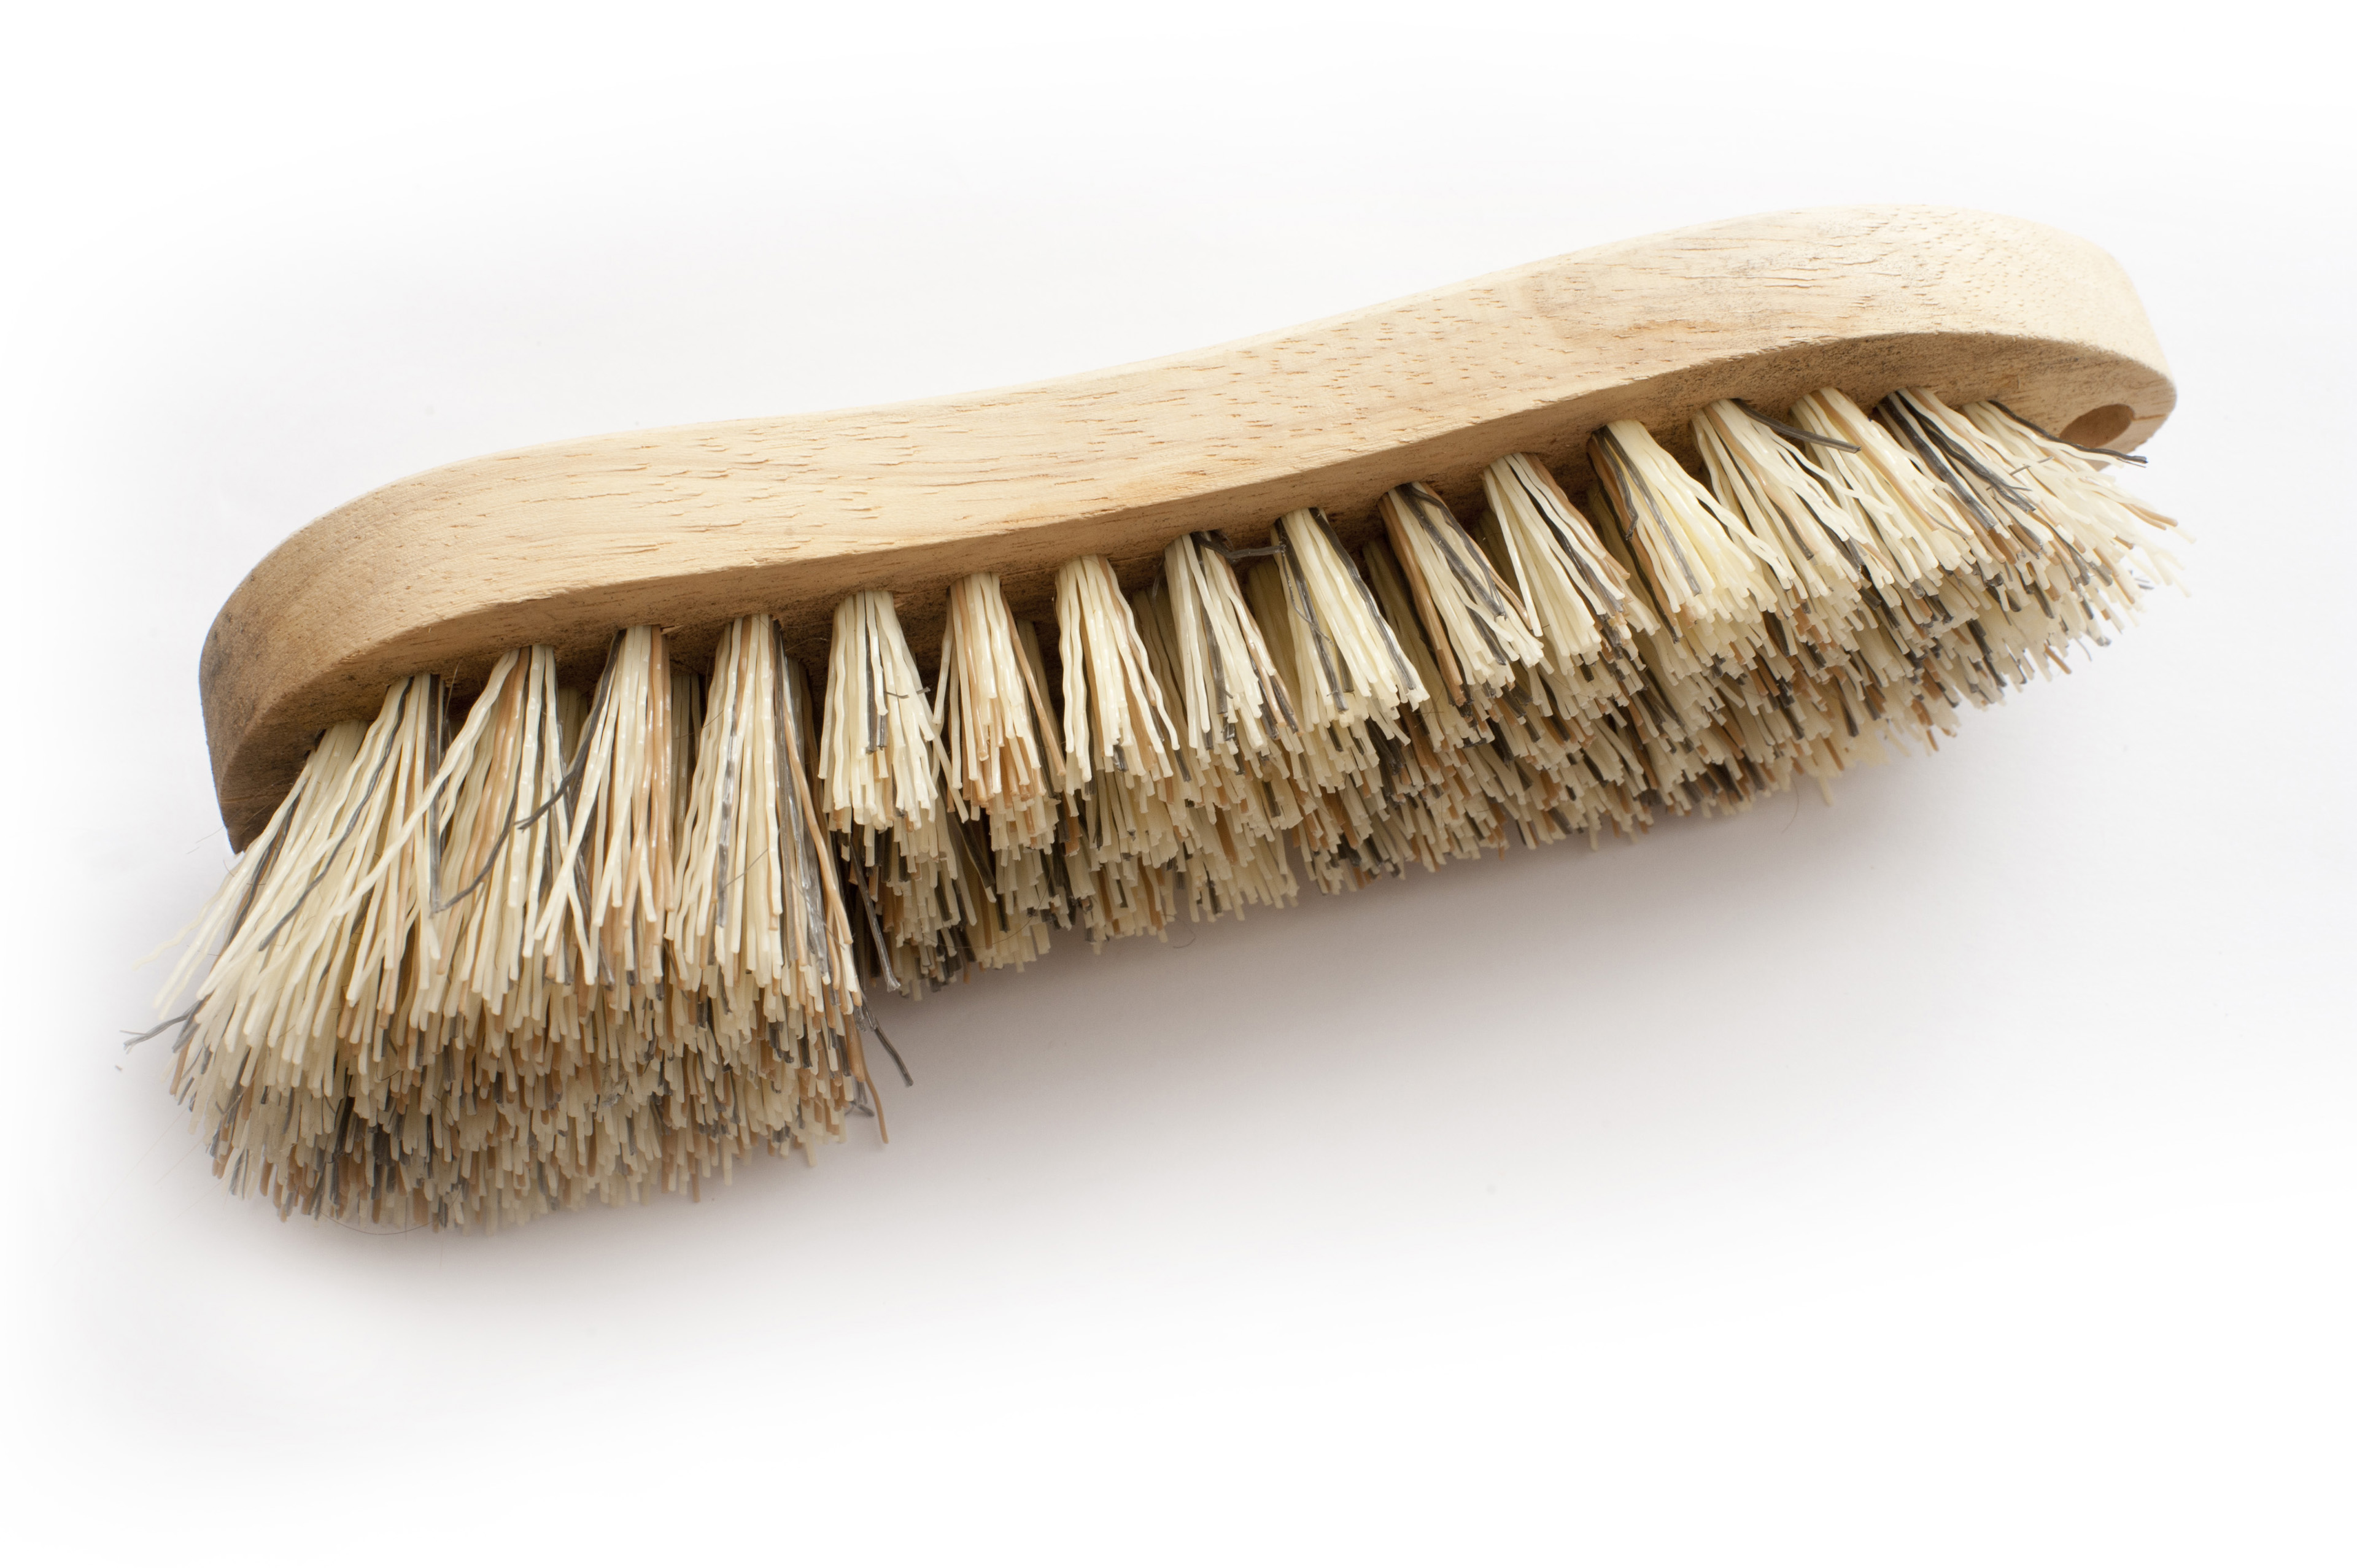 Still Life of Single Cleaning Scrub Brush with Bristles of Various Lengths on White Background from Above